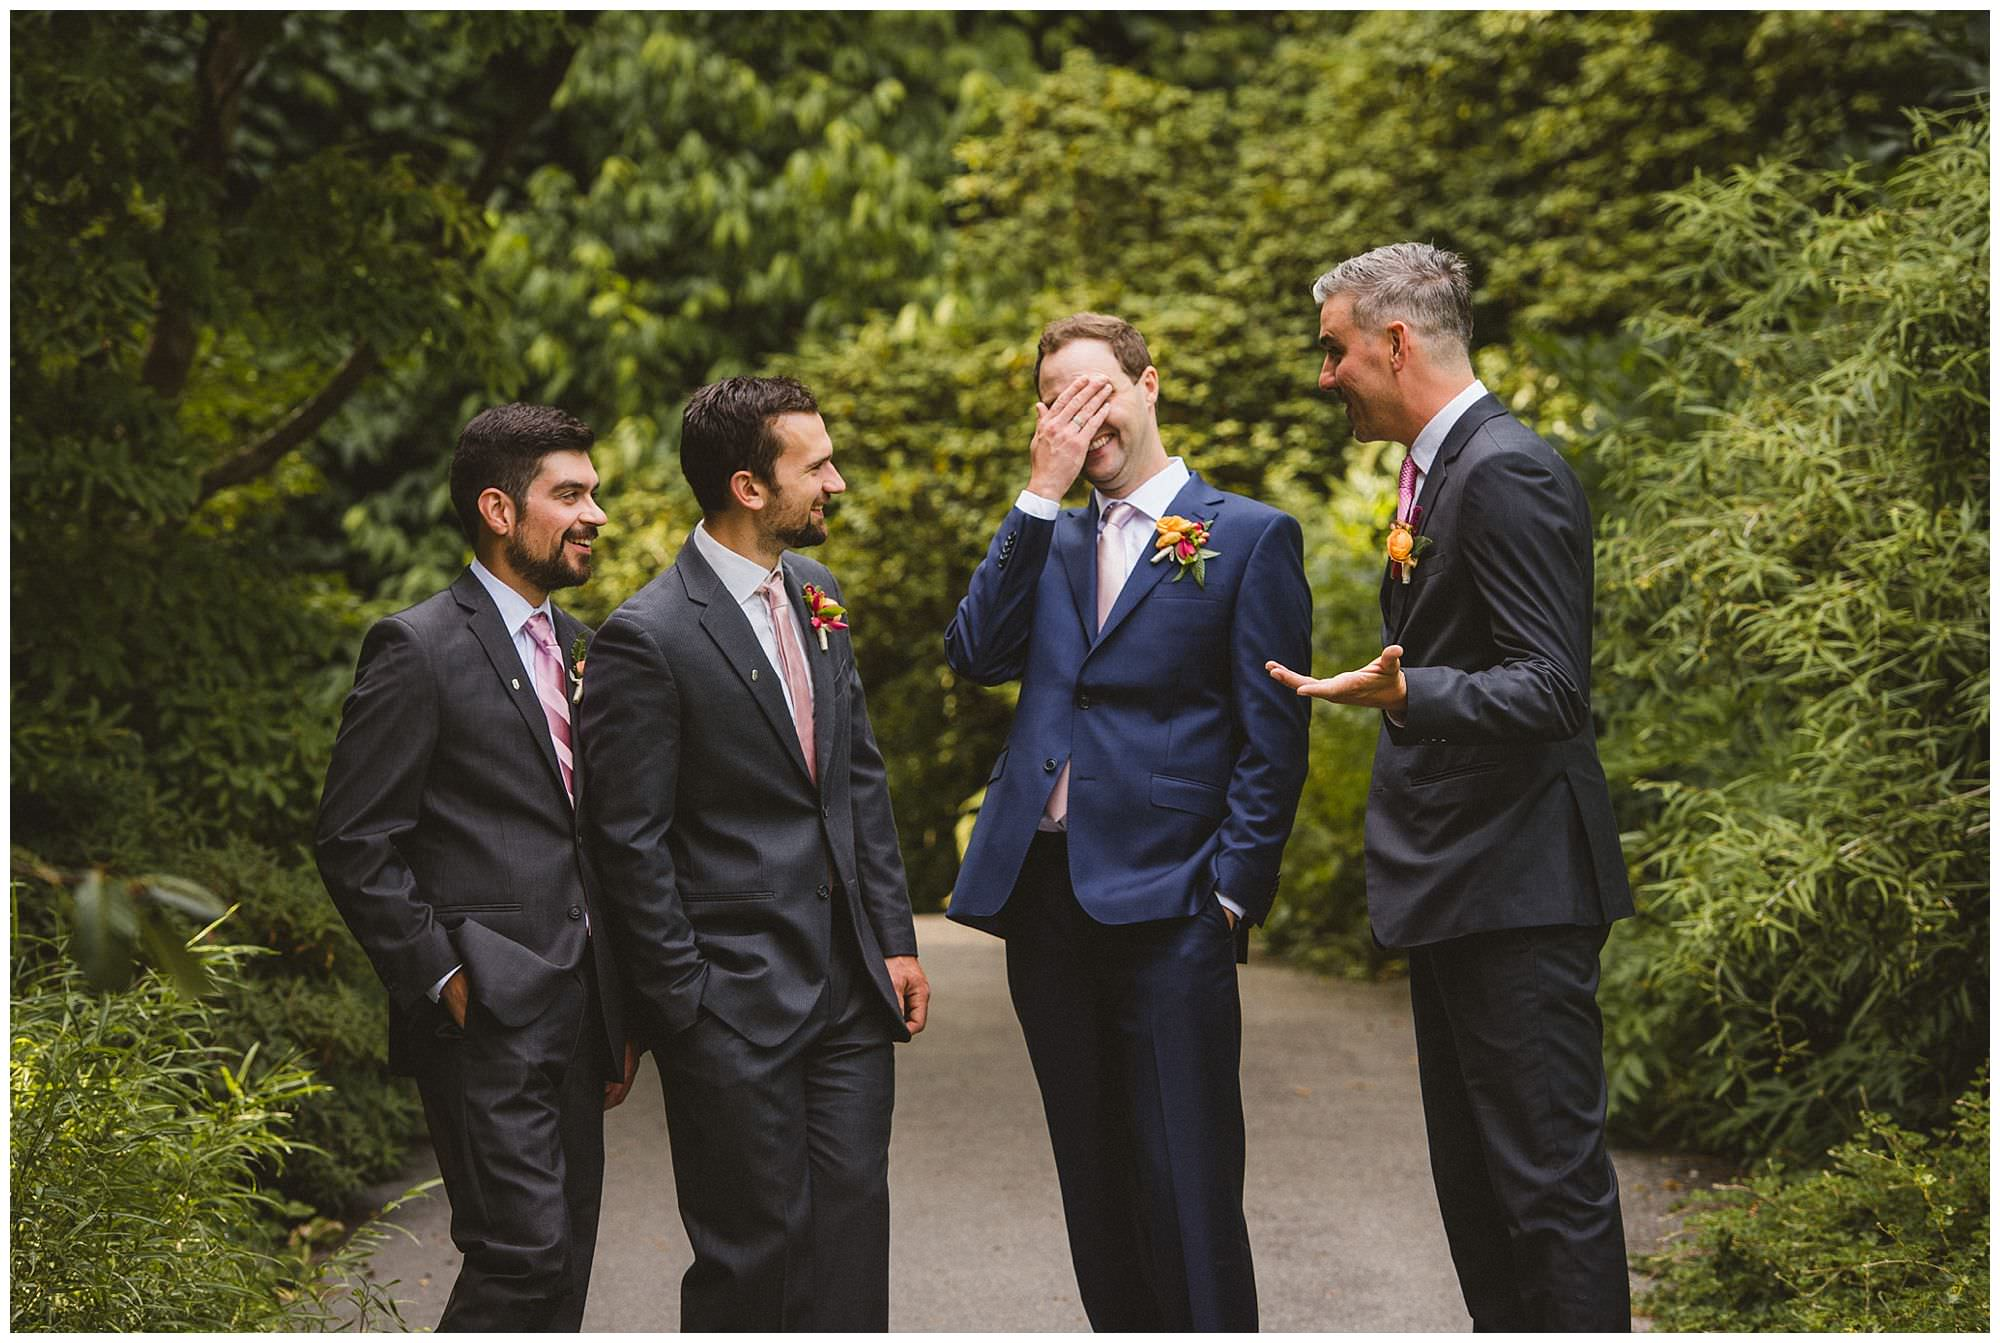 Vancouver wedding photographer, candid wedding photography